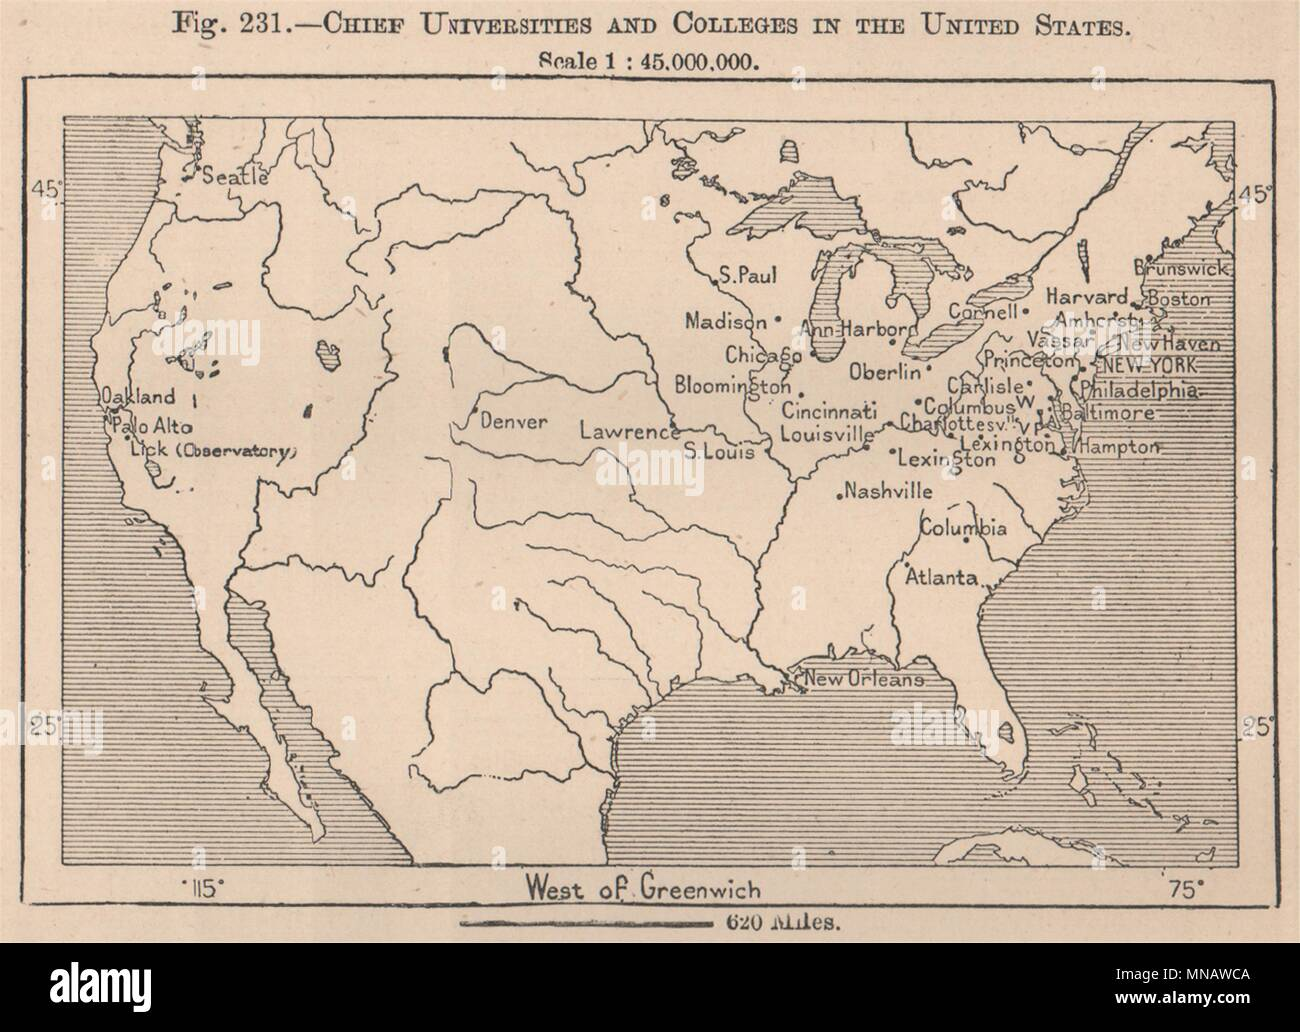 Chief Universities and Colleges in the United States. USA 1885 old ...